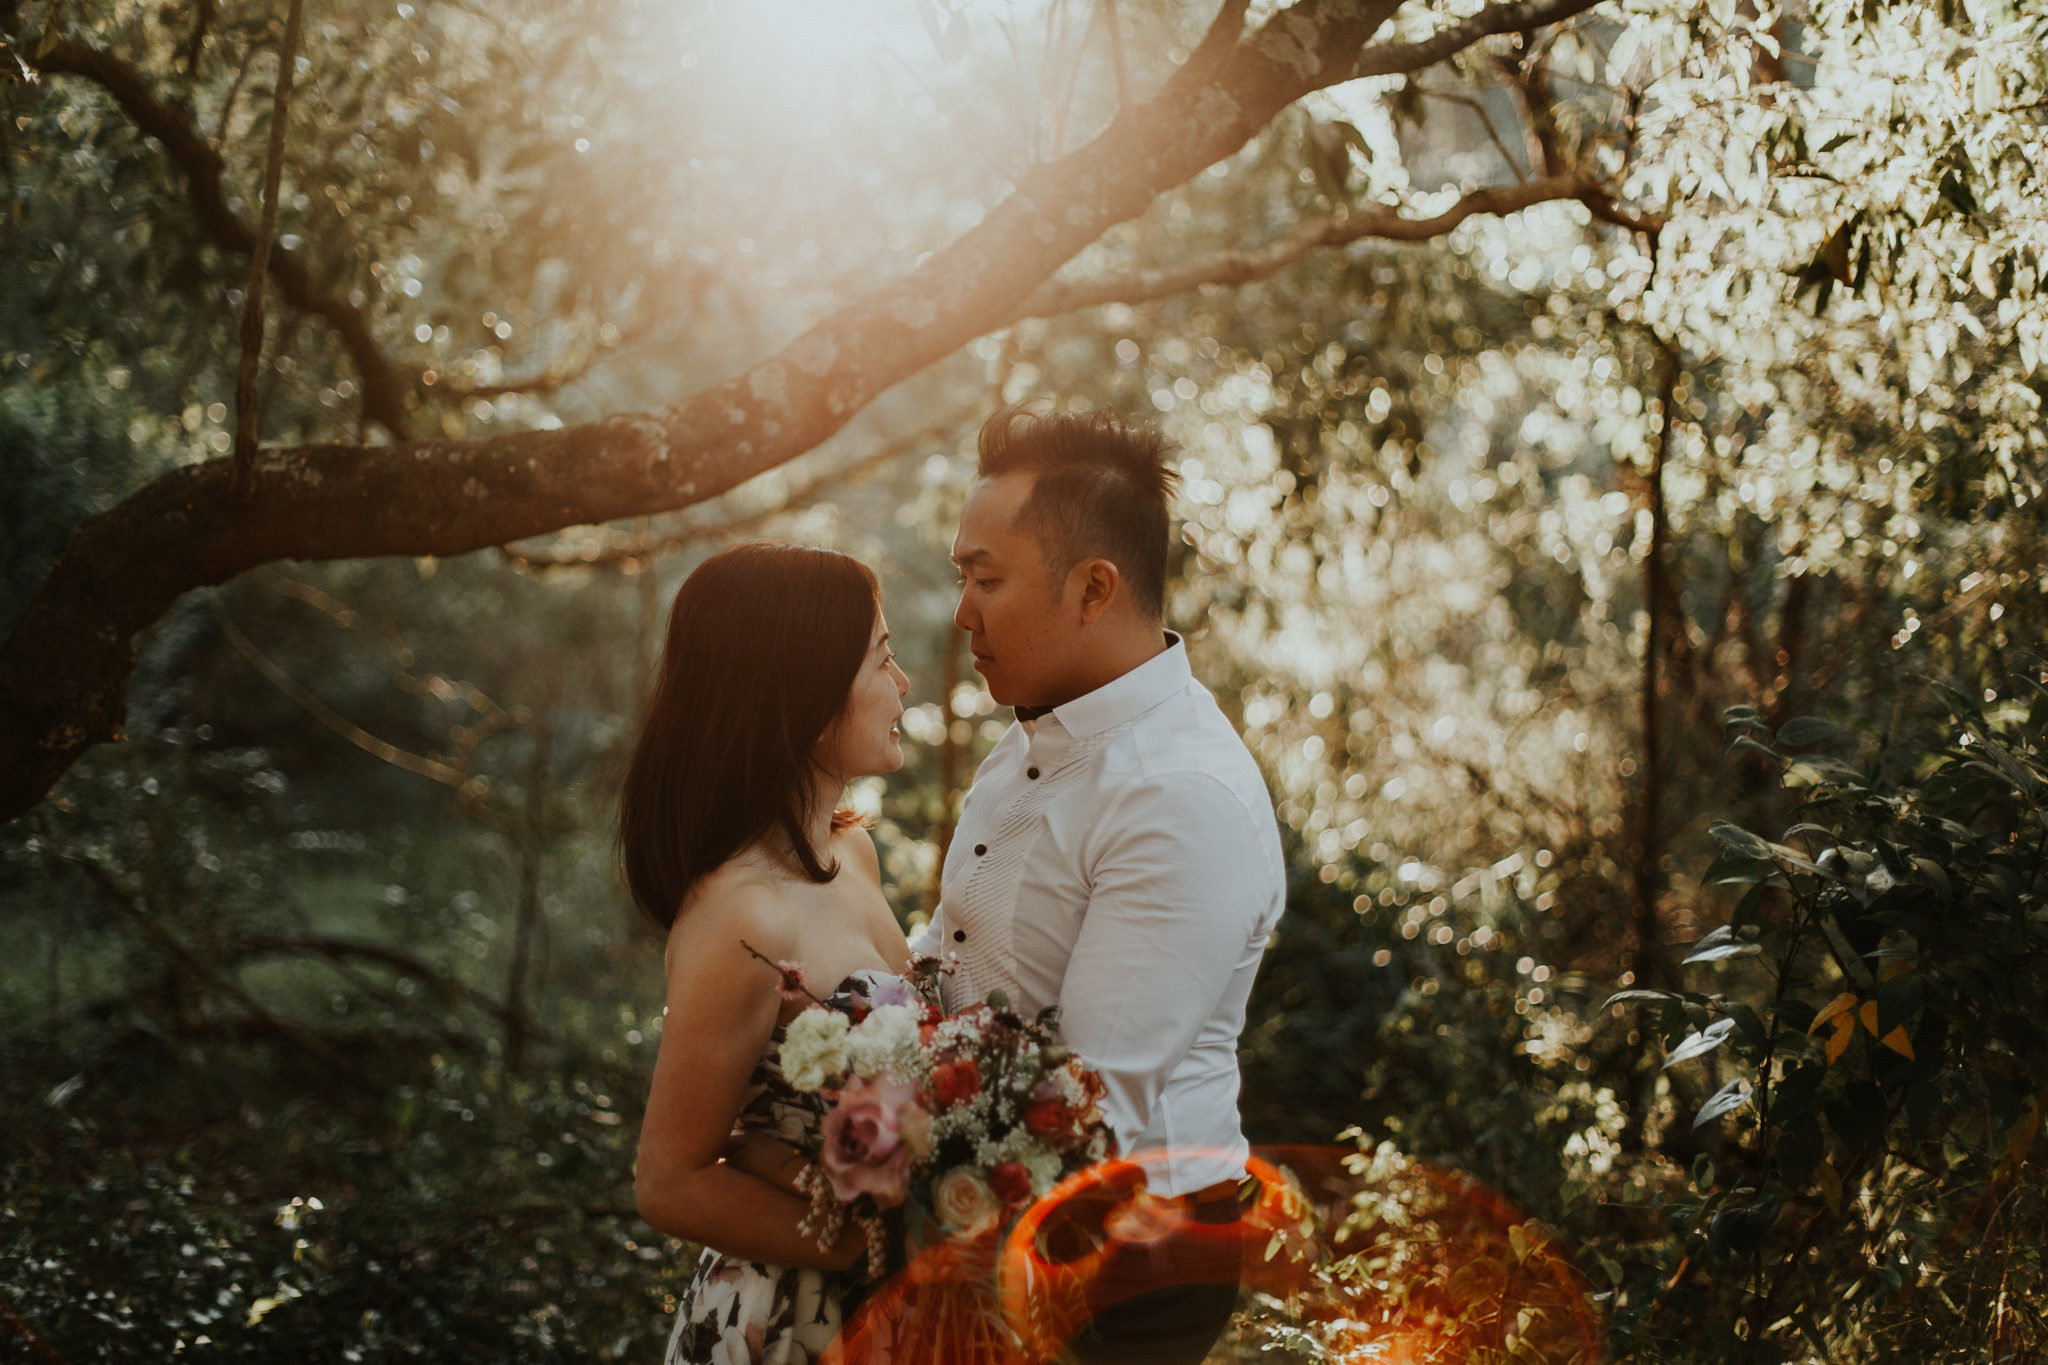 Fox & Kin Australian Destination Wedding Photographer Intimate Elopement Sydney Byron Bay Coffs Harbour Port Macquarie Nicola Bodle